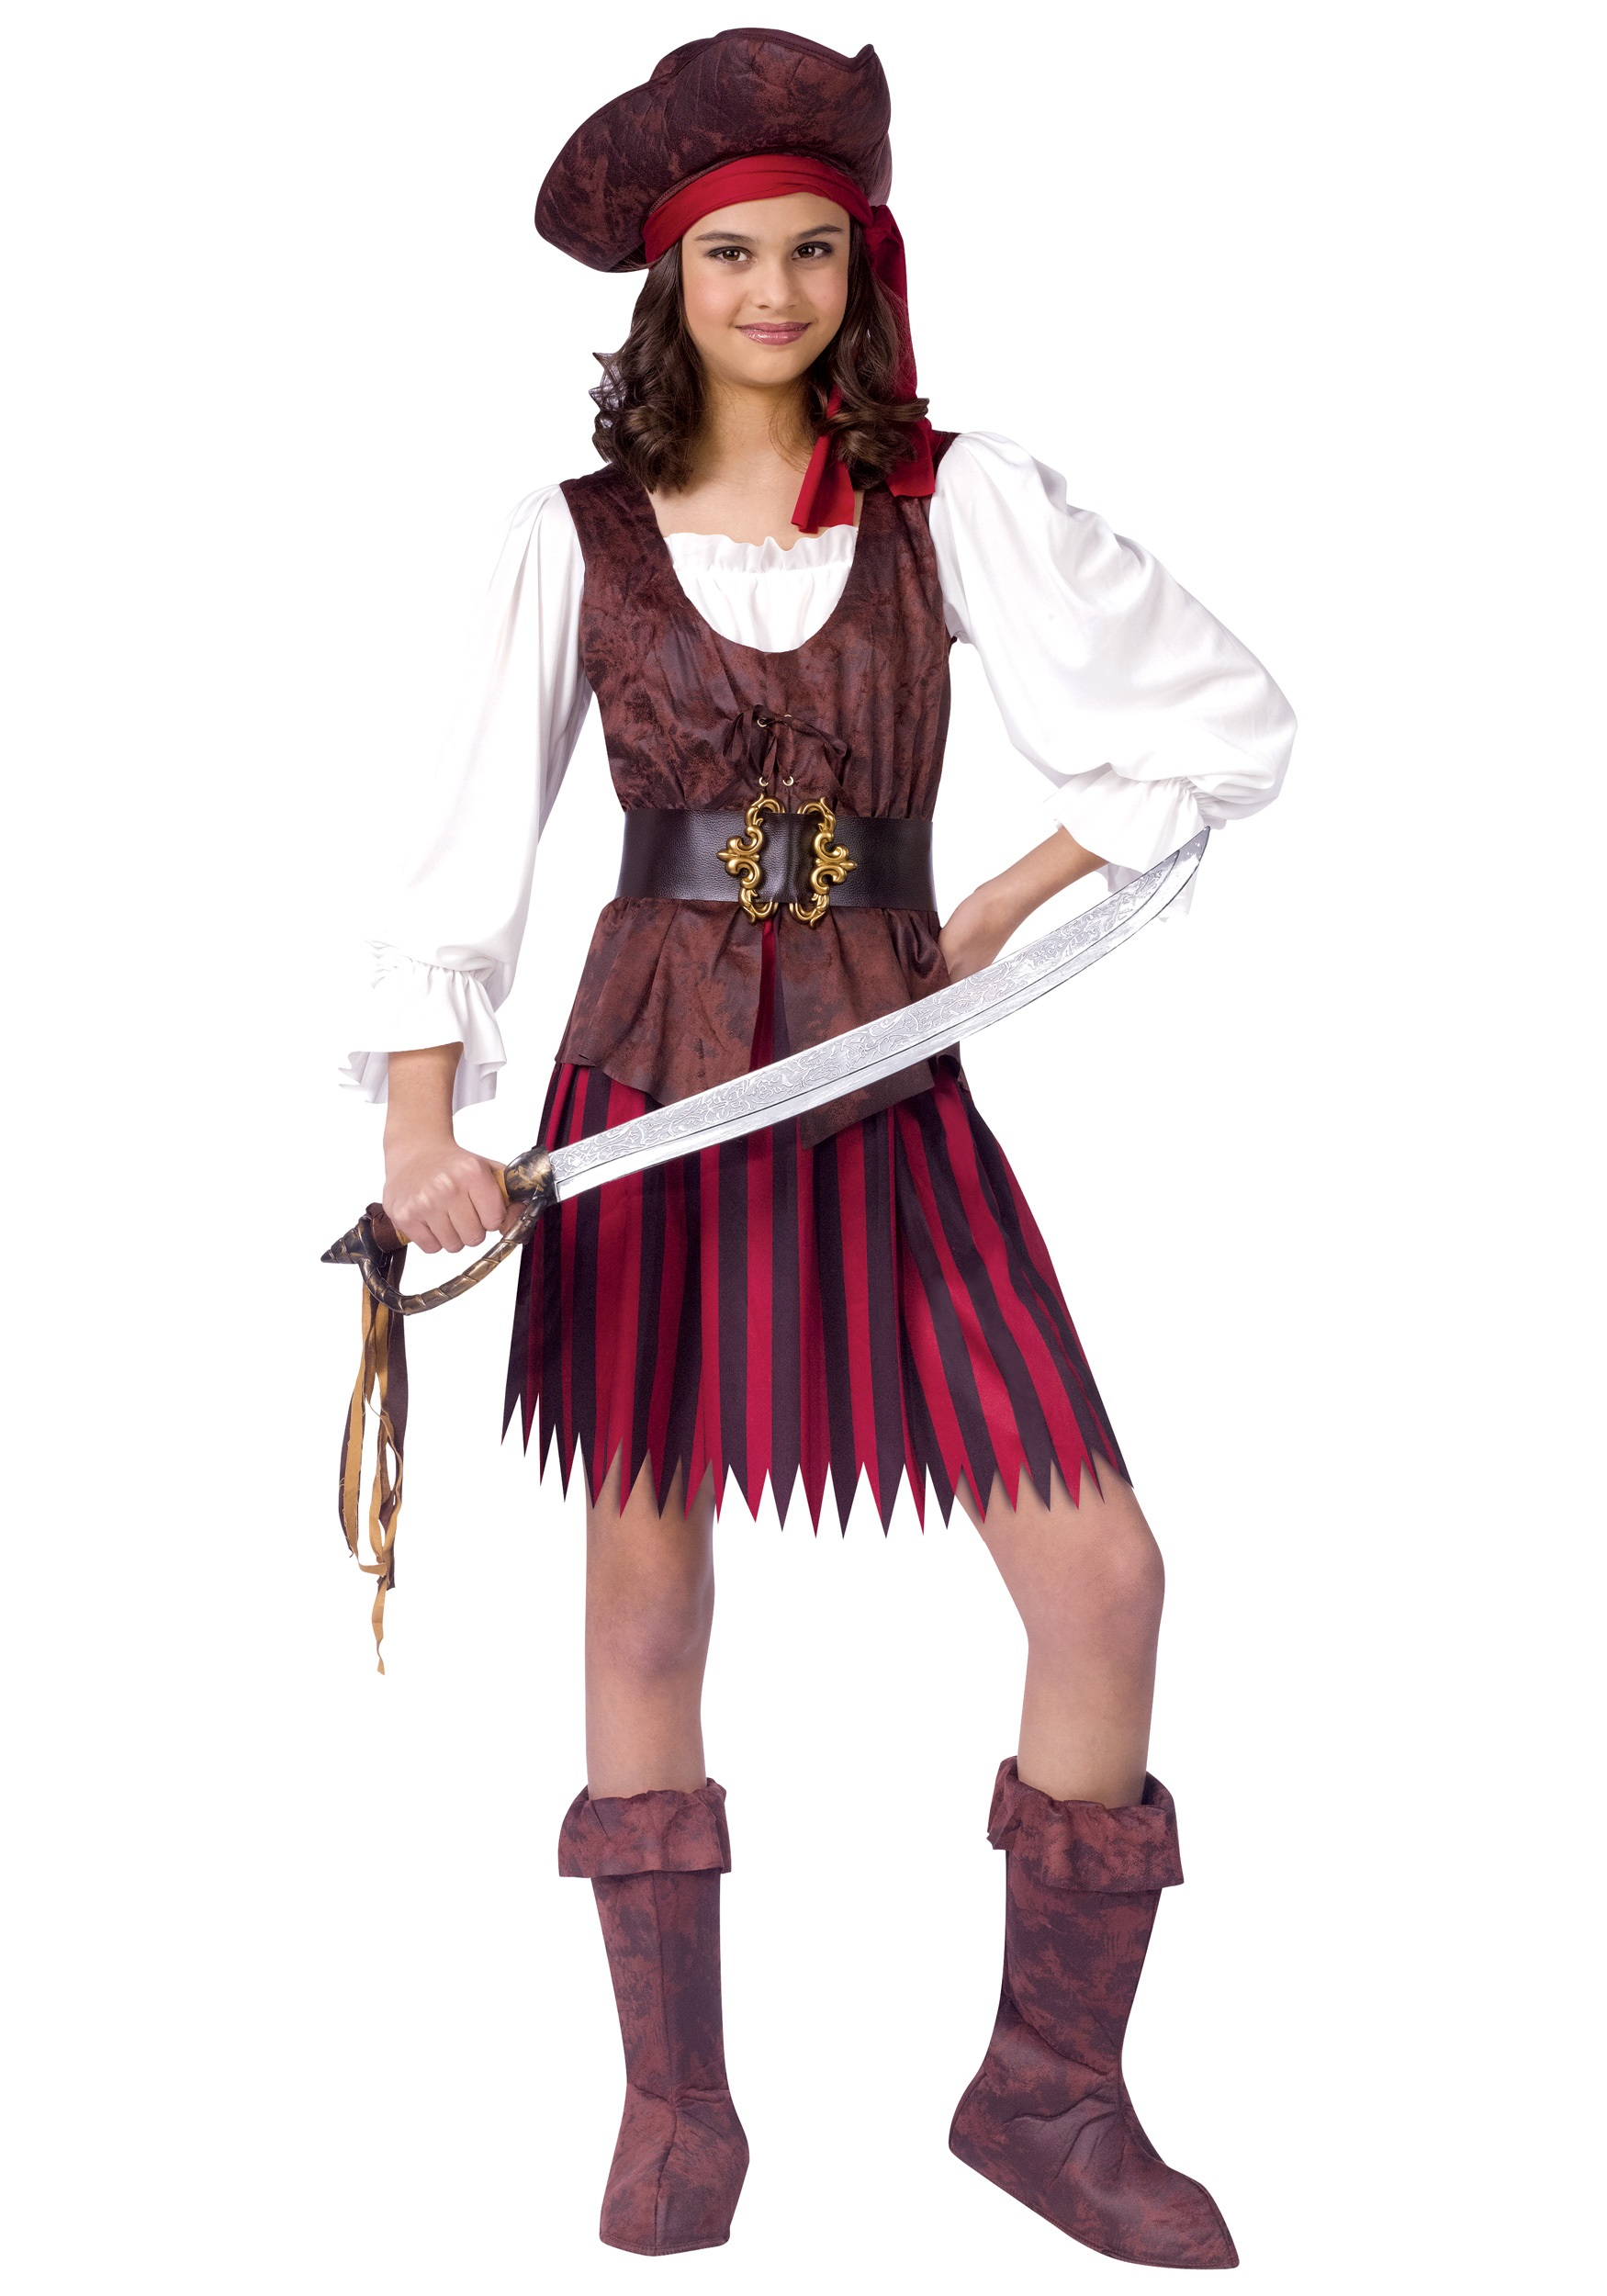 High Seas Lass Pirate Costume  sc 1 st  Halloween Costume & High Seas Lass Pirate Costume - Child Pirate Halloween Costumes